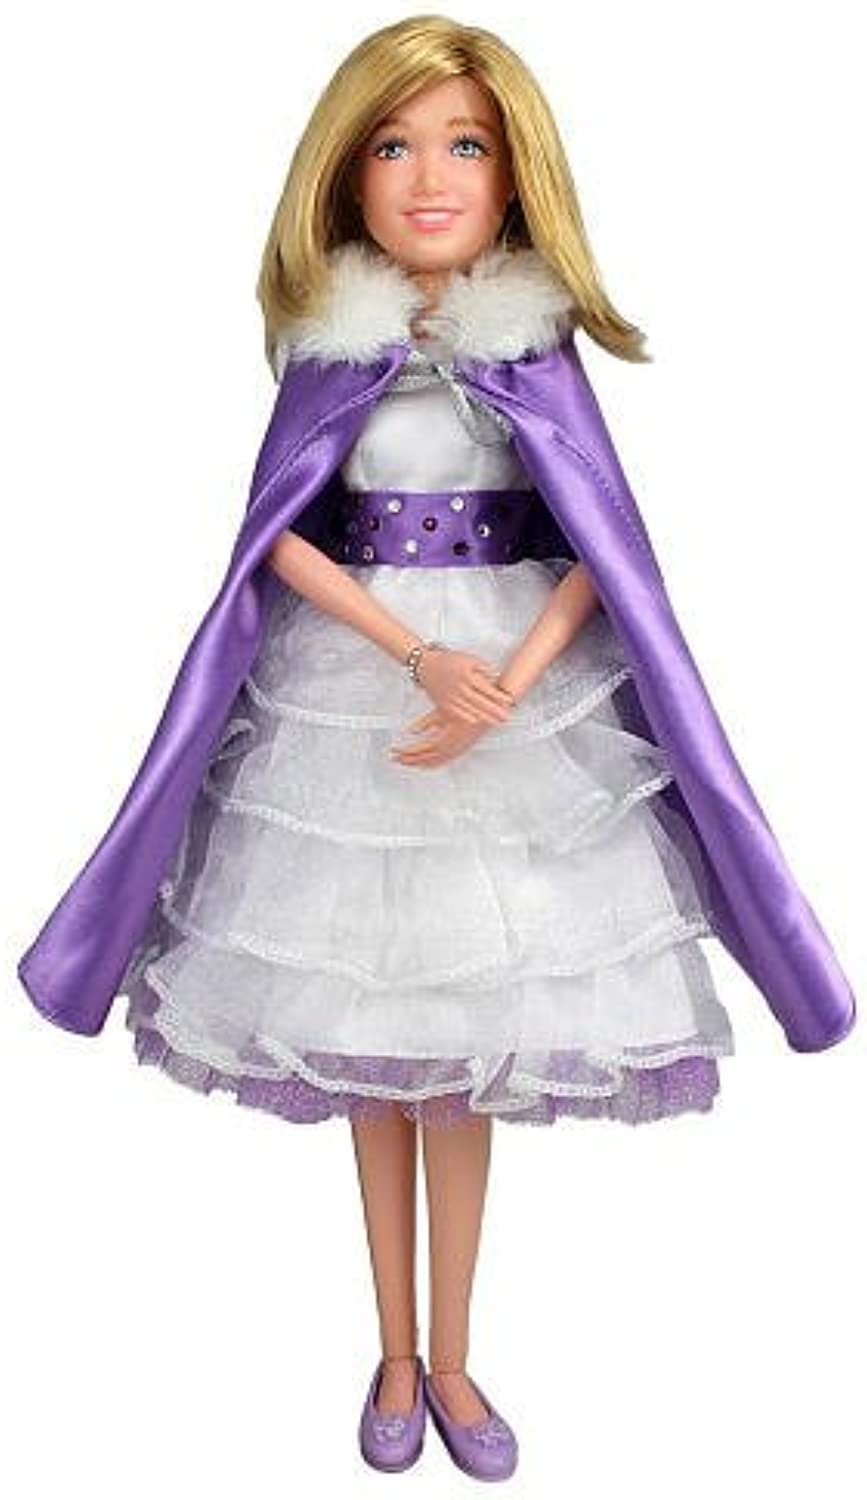 Jackie Evancho 14 inch Singing Collector Doll - 'When You Wish Upon a Star'